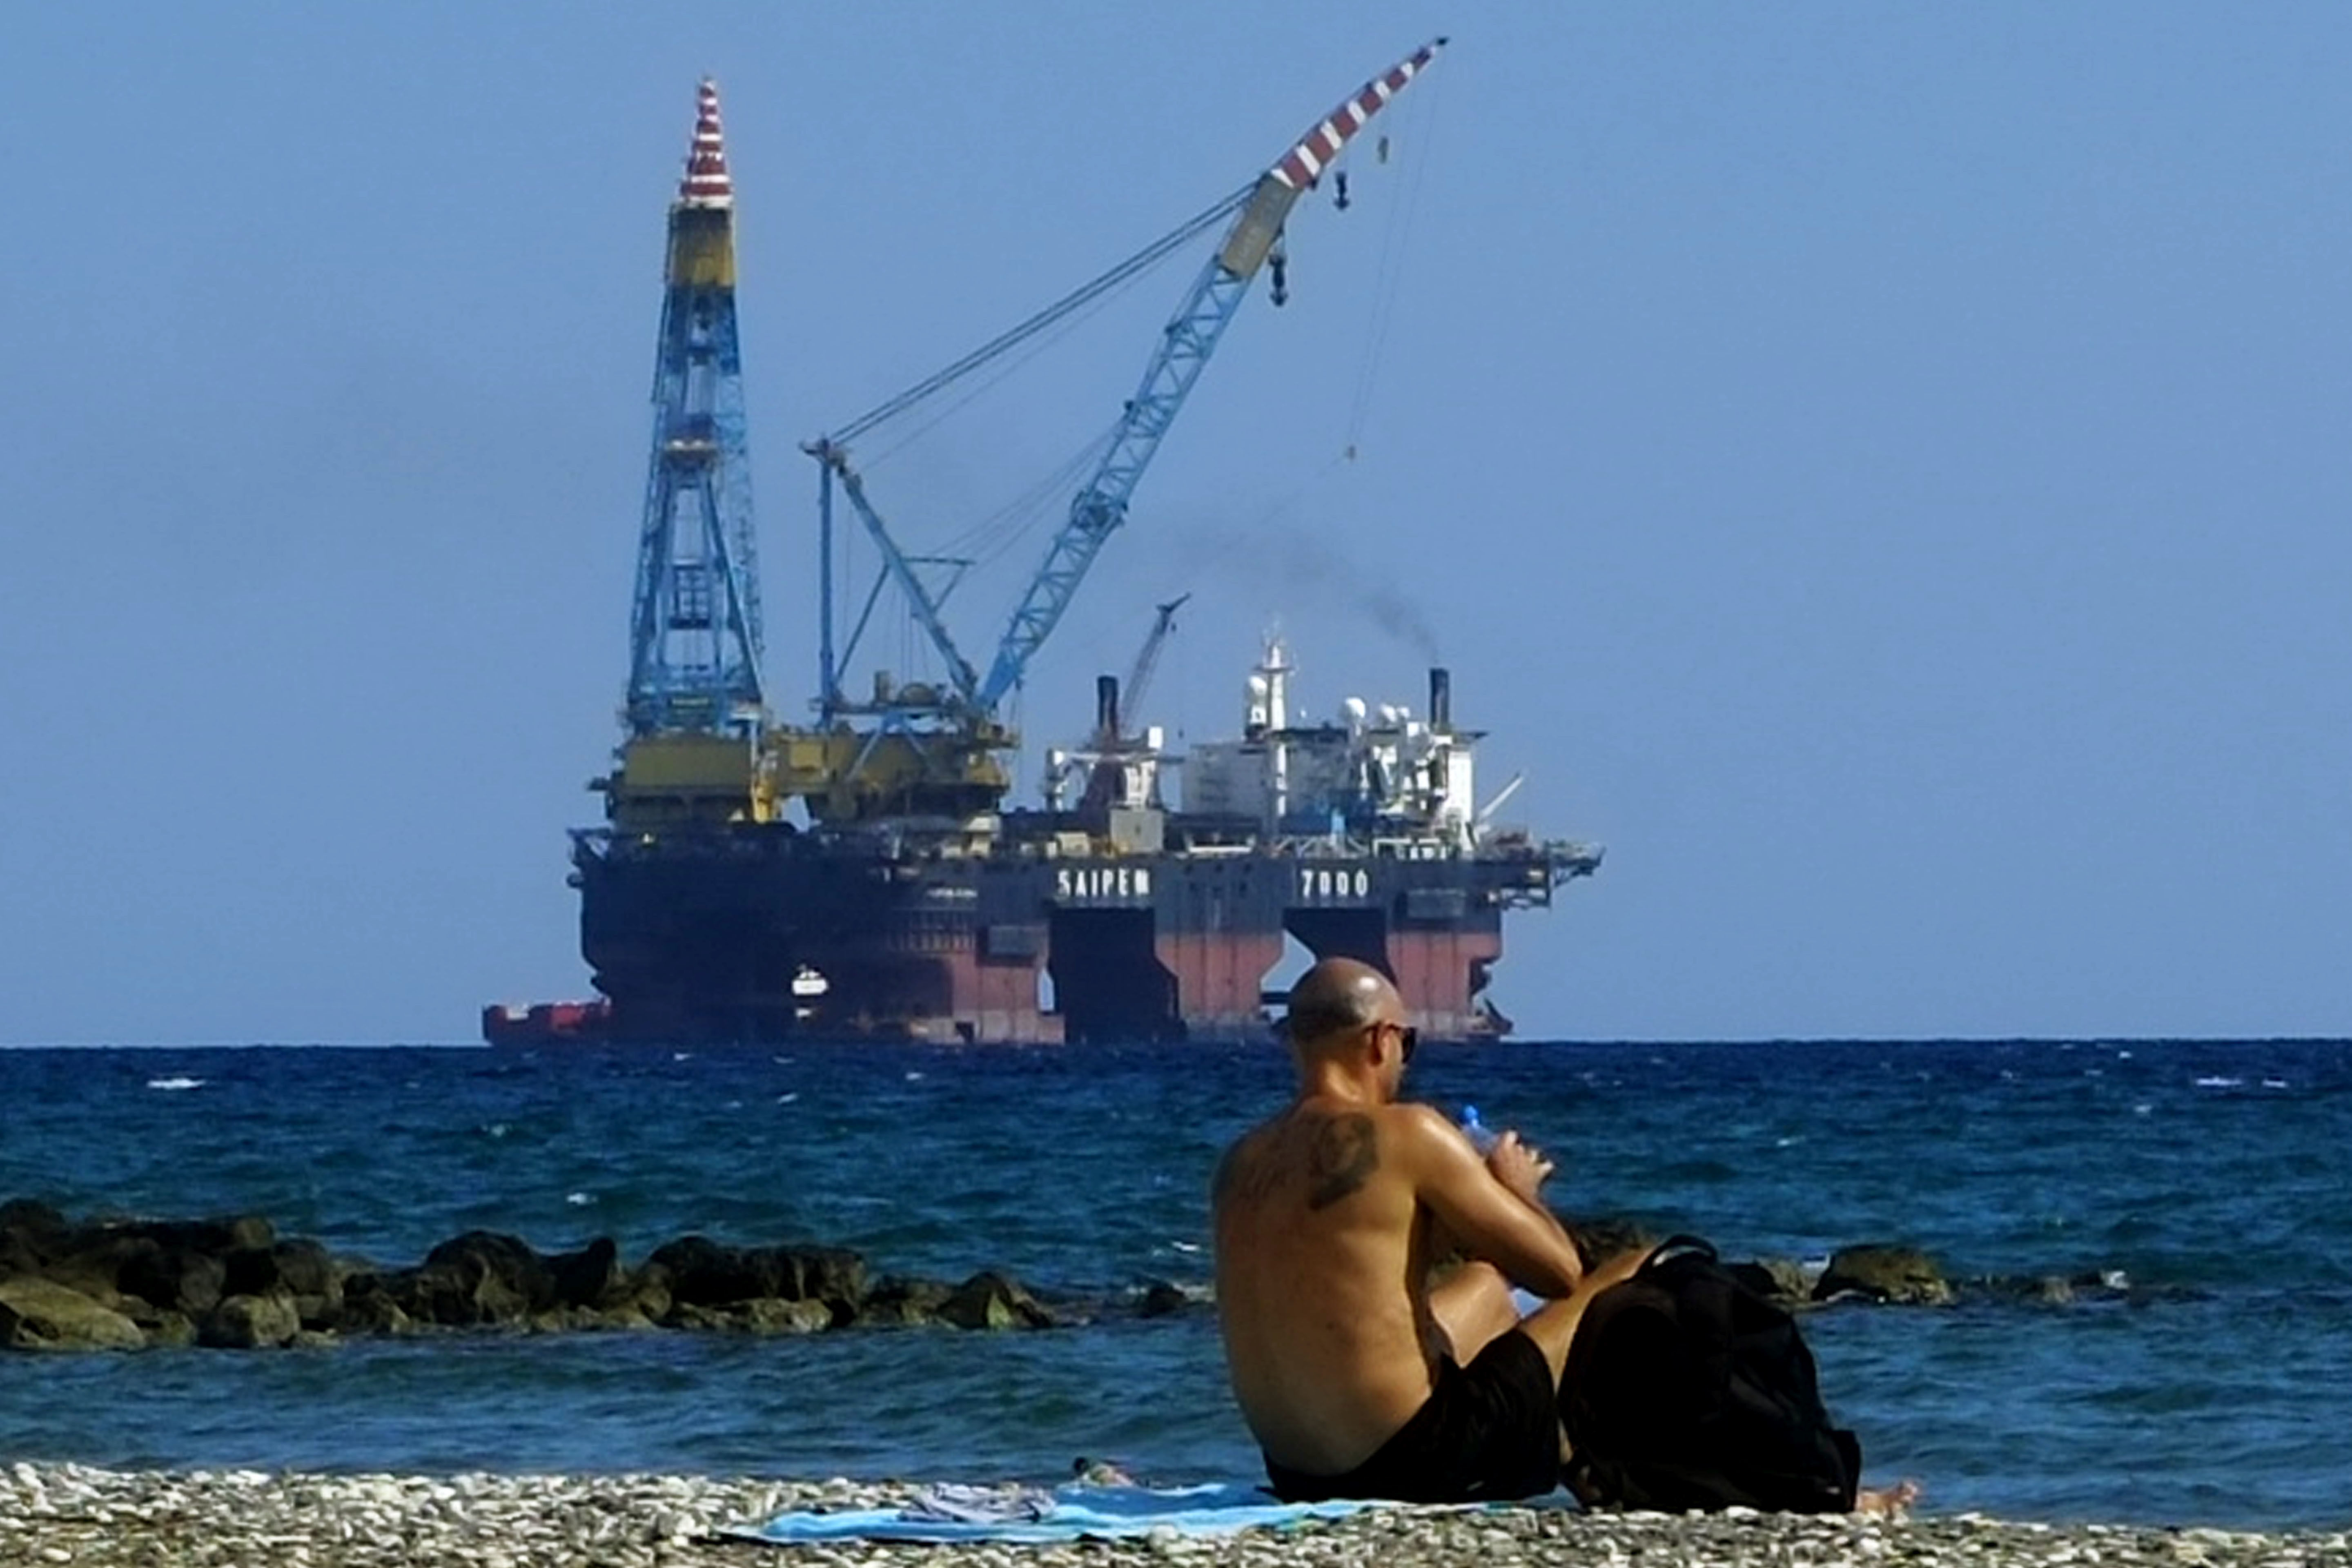 A drilling platform outside Larnaca port in Cyprus (AP Photo/Petros Karadjias, File)